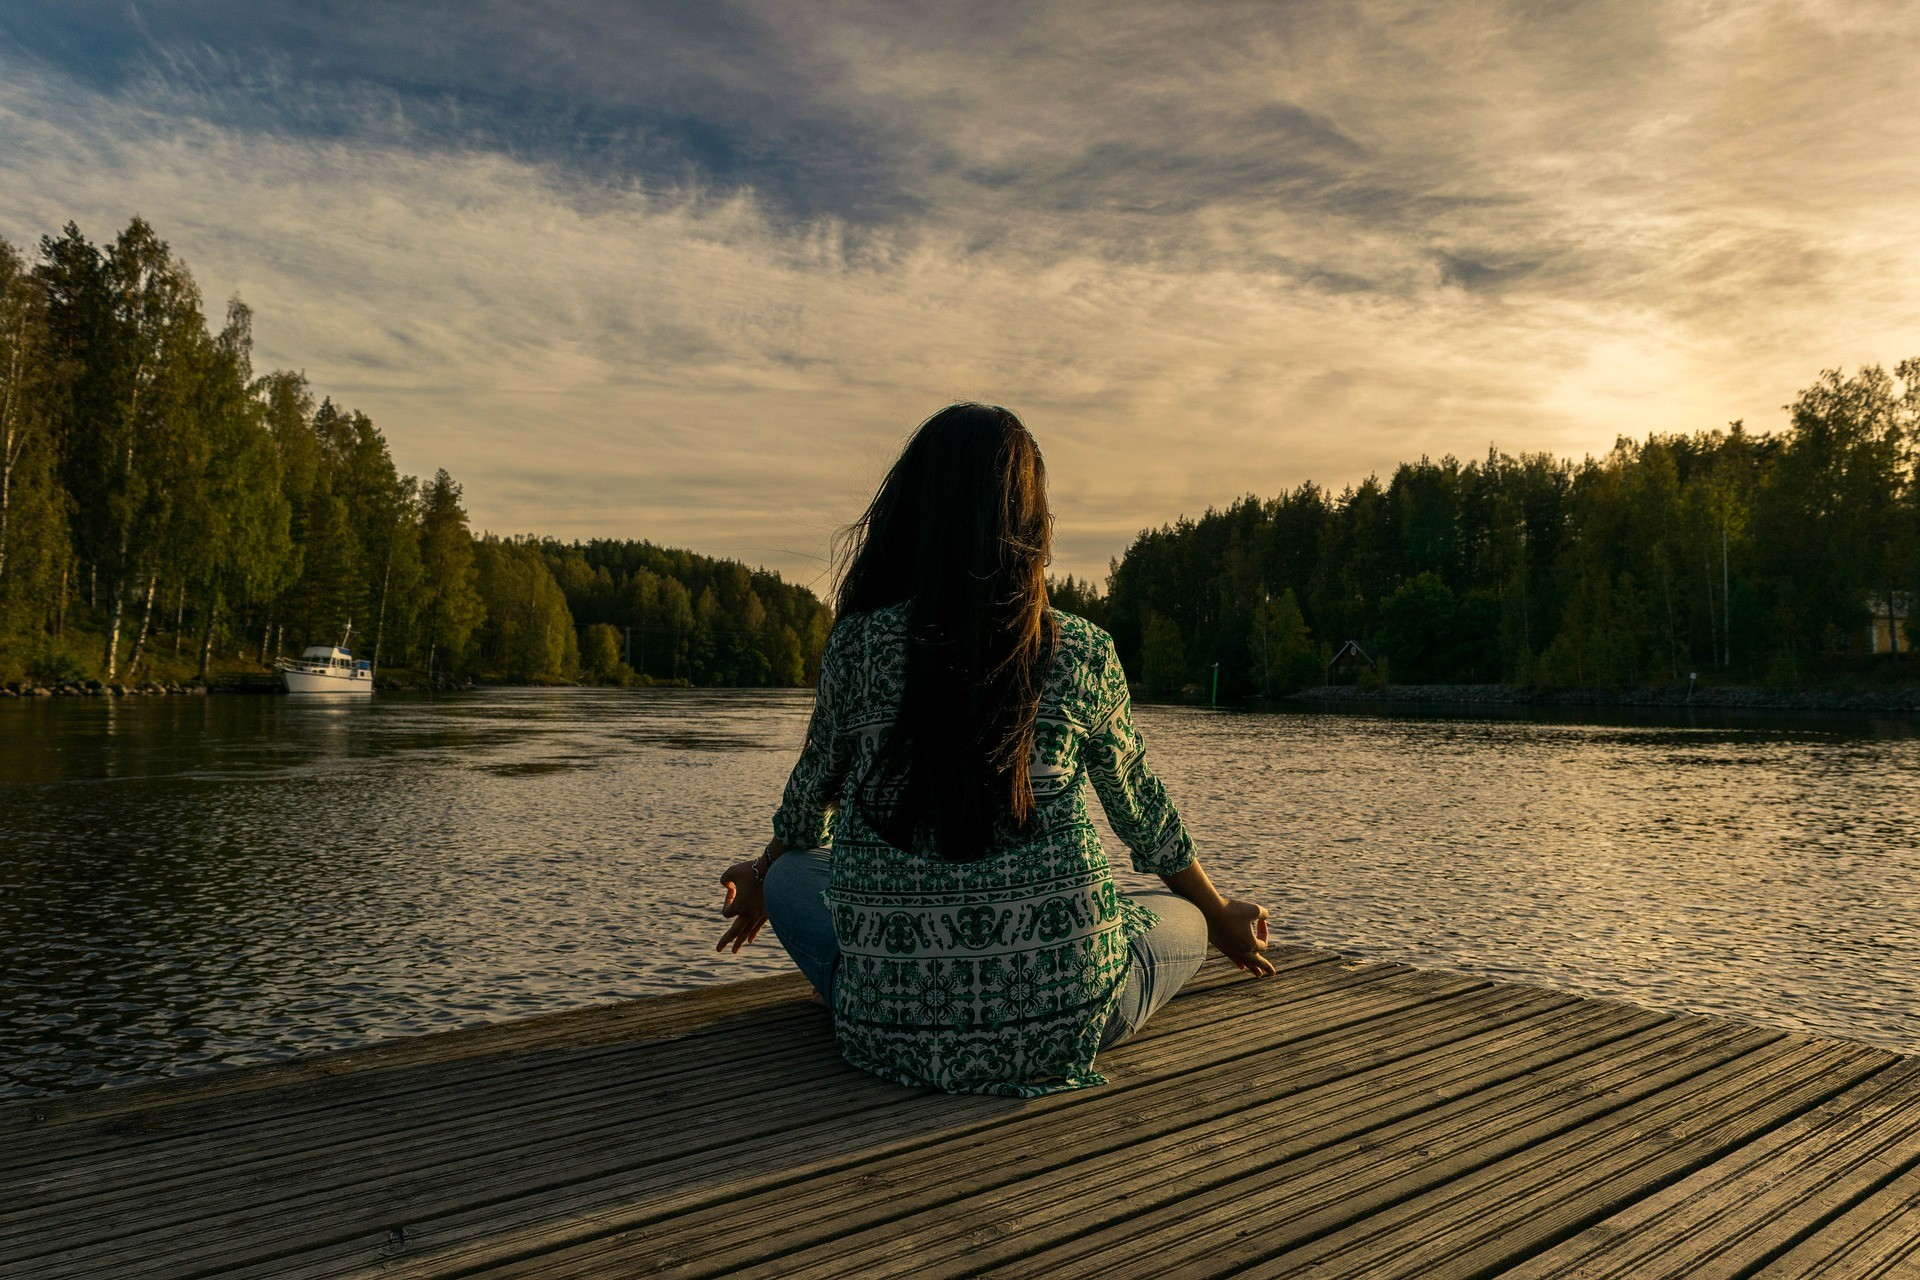 Long hair woman meditate on wooden deck on a lake